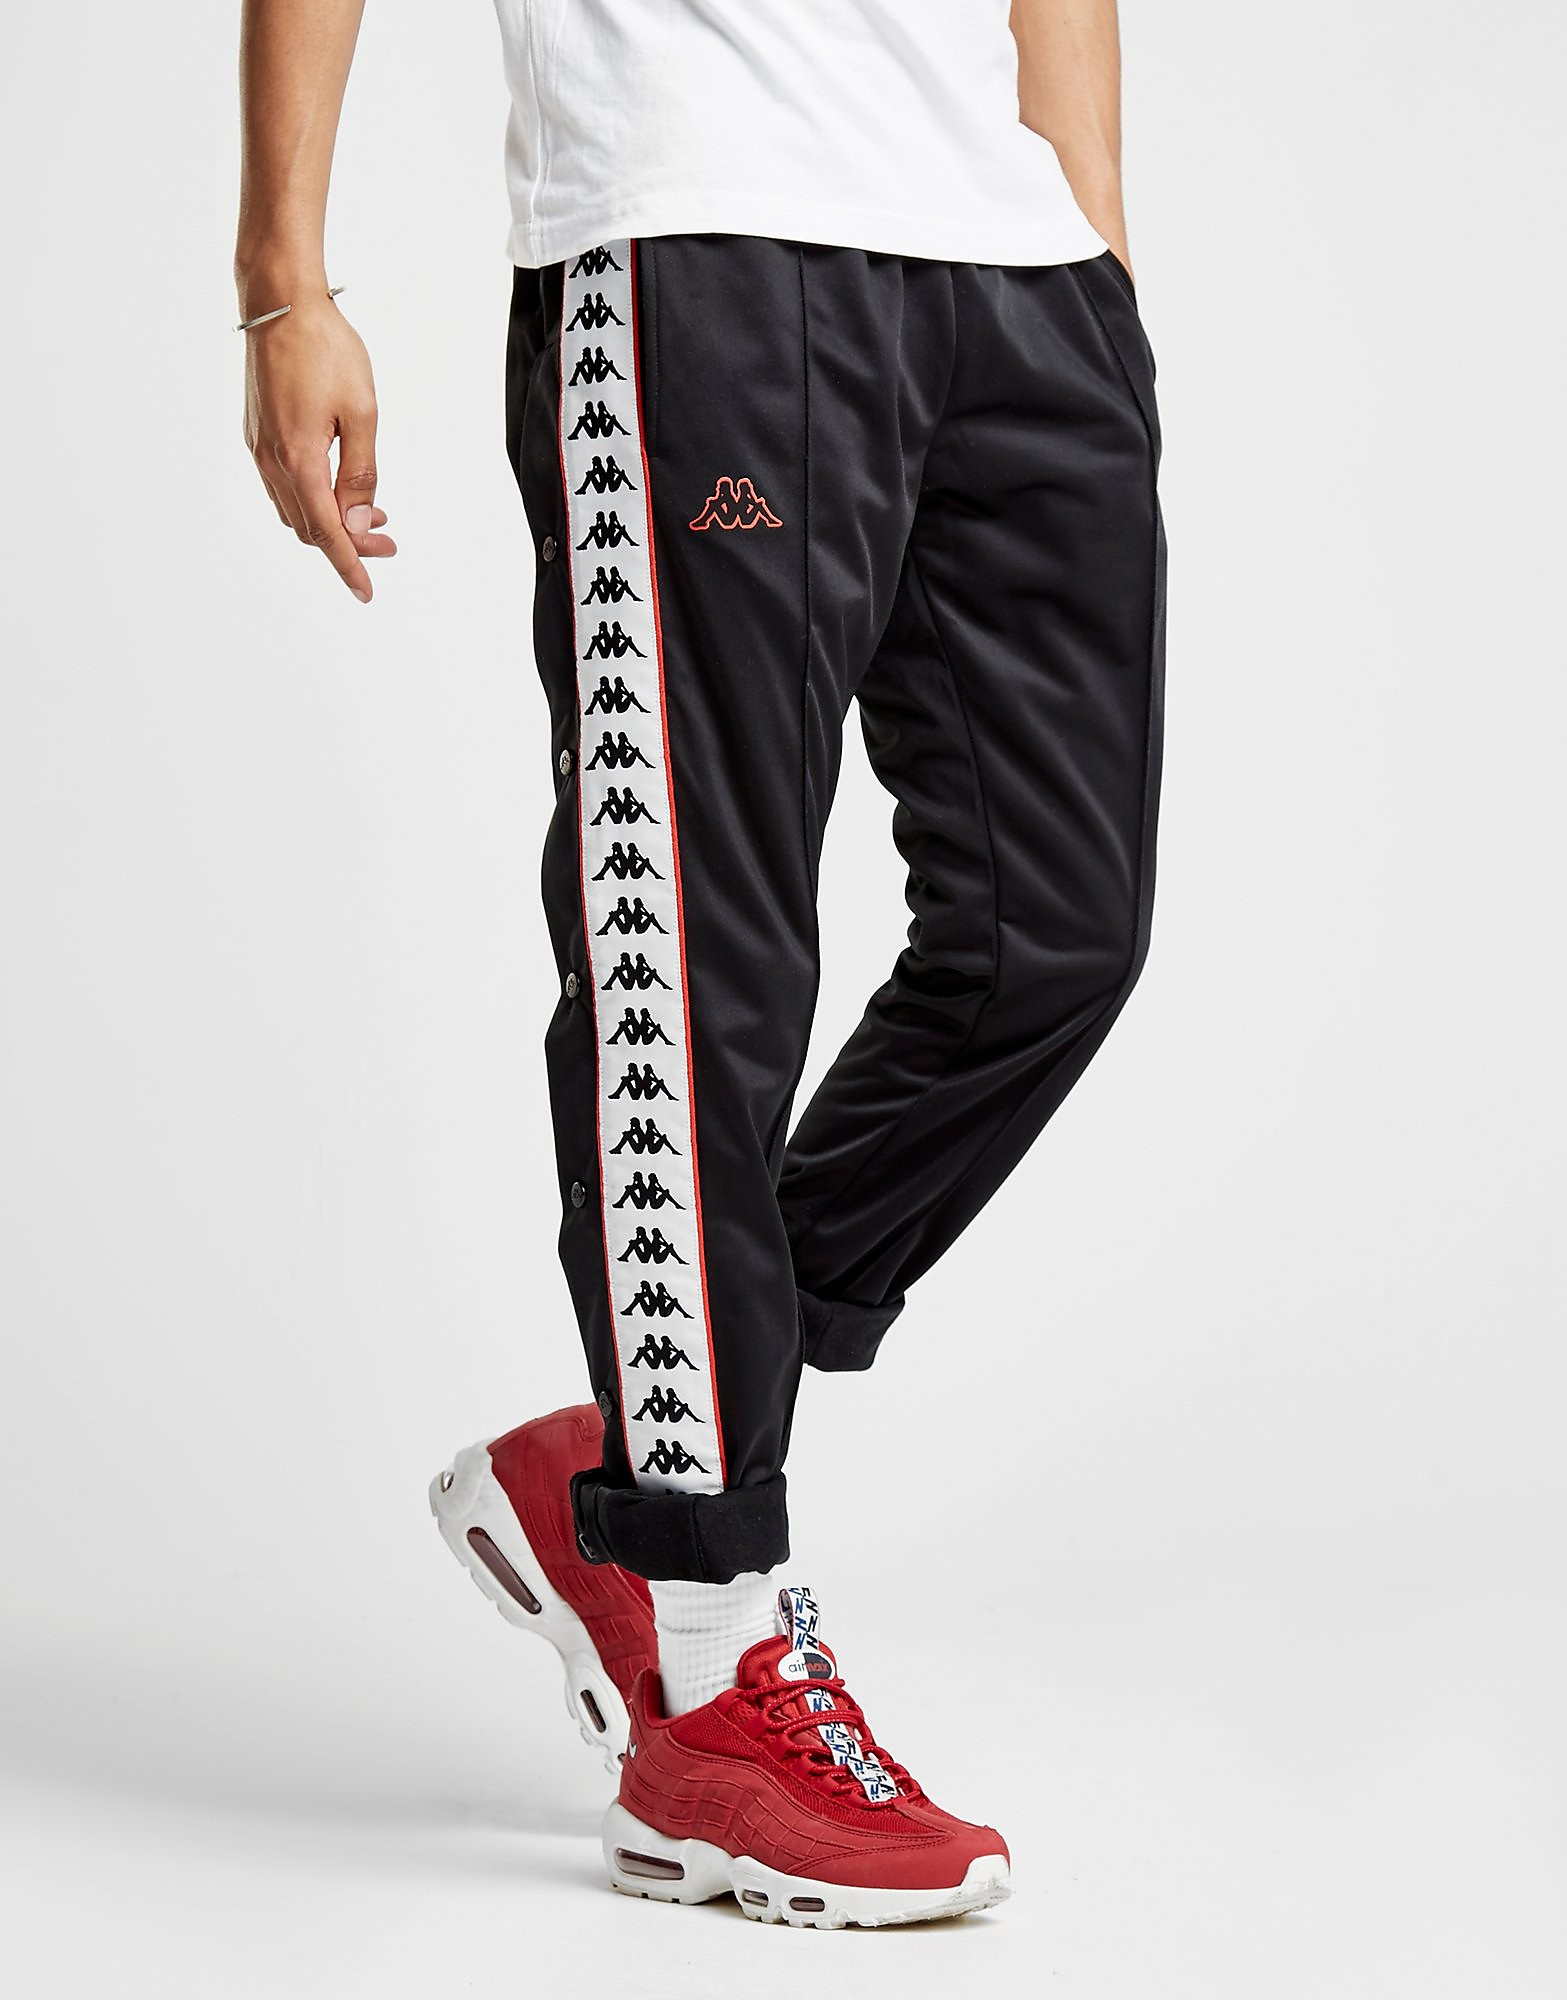 Kappa Astoria Snap Pants